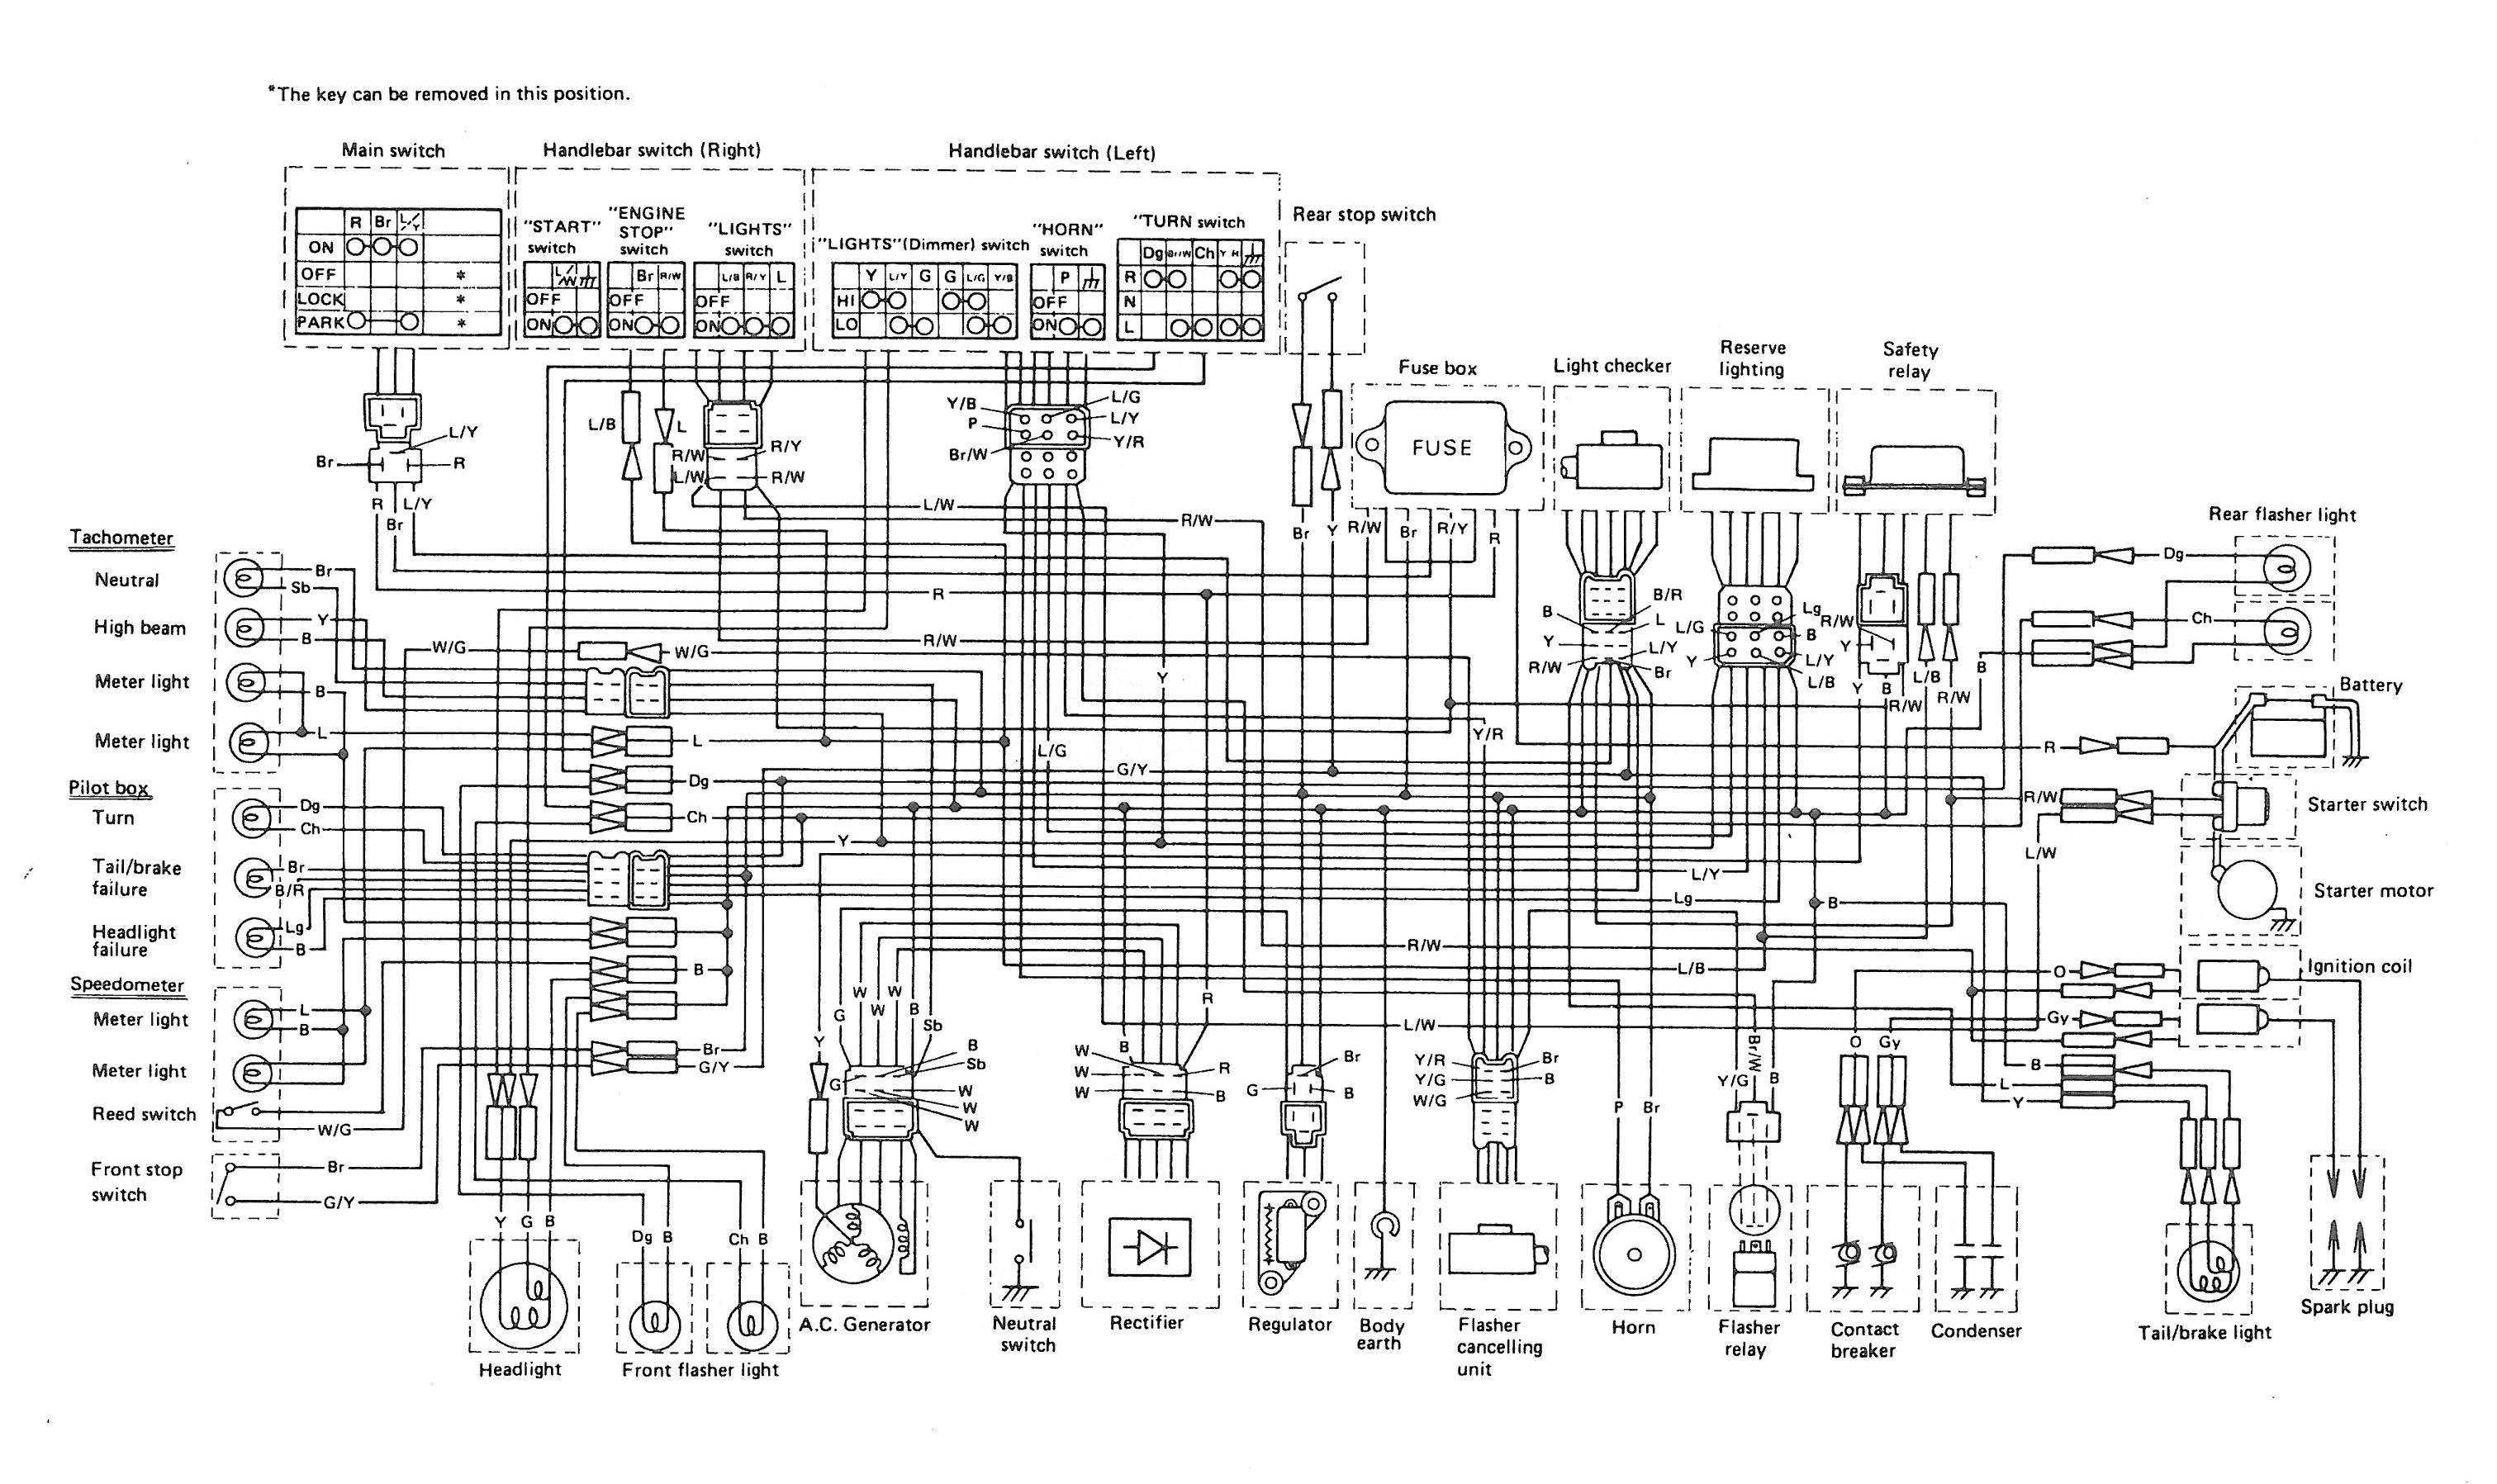 78 xsse wiring 6 1 1981 xs650 wiring diagram 1975 xs650 wiring diagram \u2022 wiring  at highcare.asia